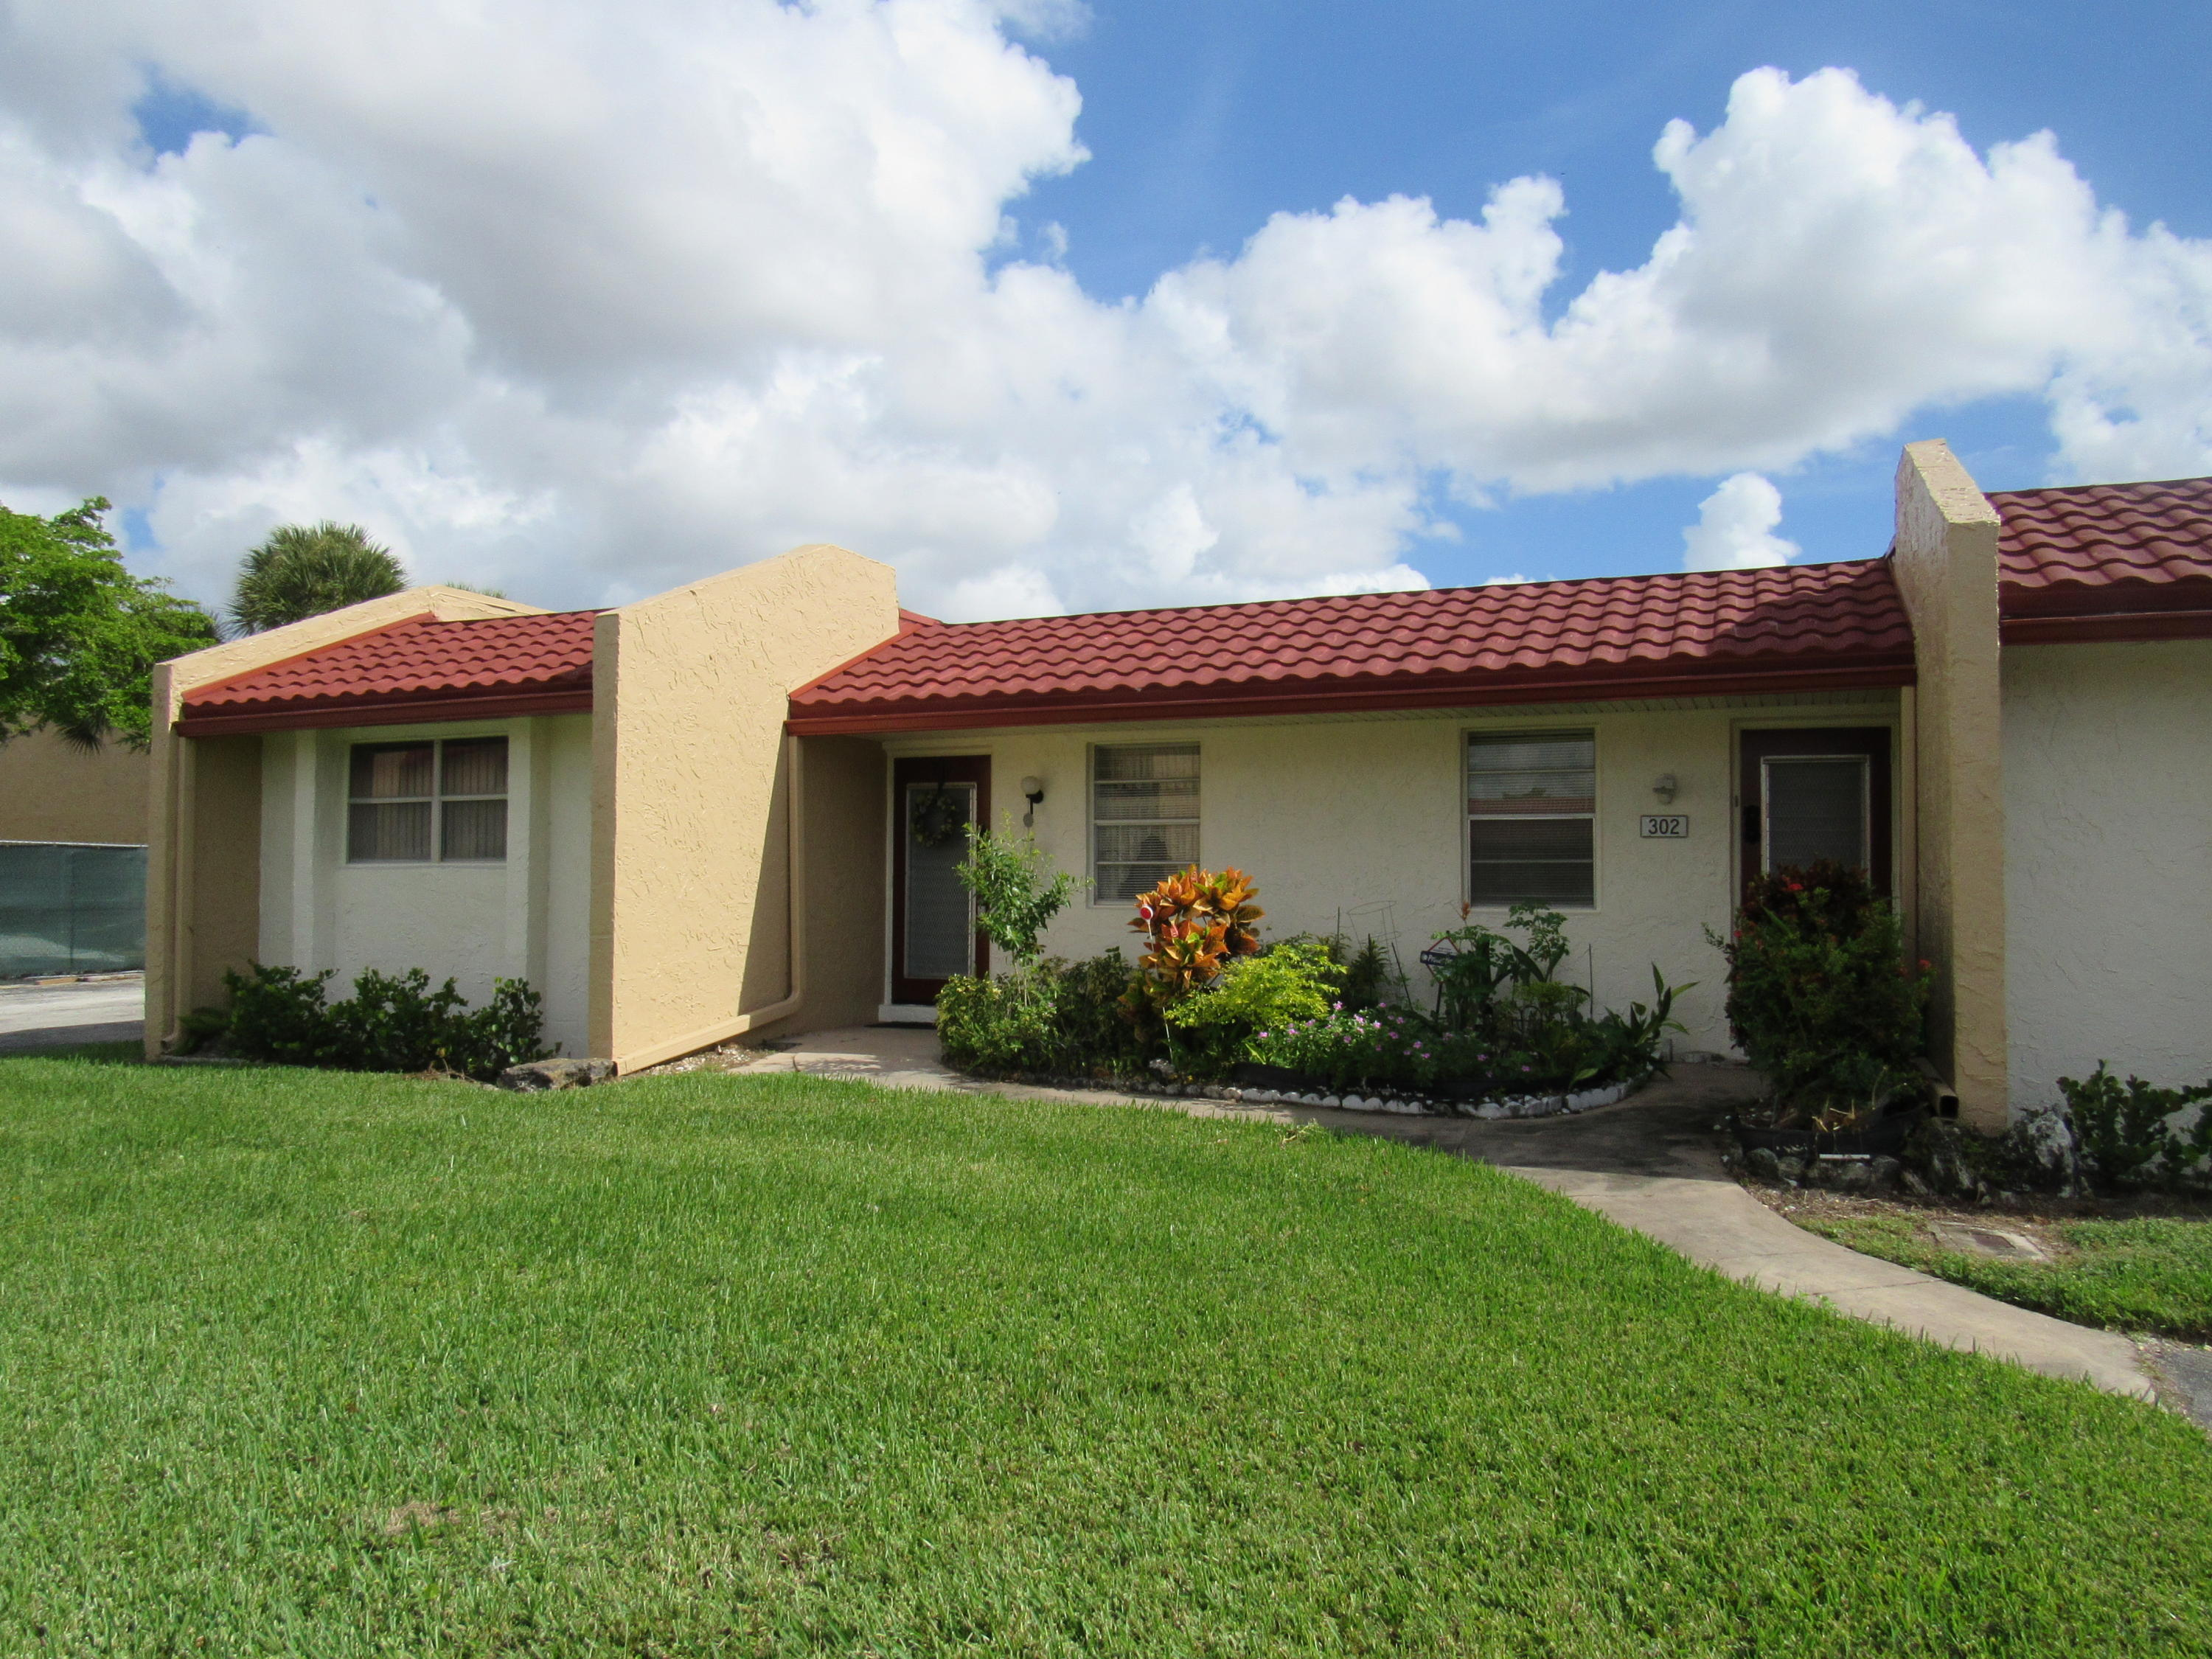 300 Lake Carol, West Palm Beach, Florida 33411